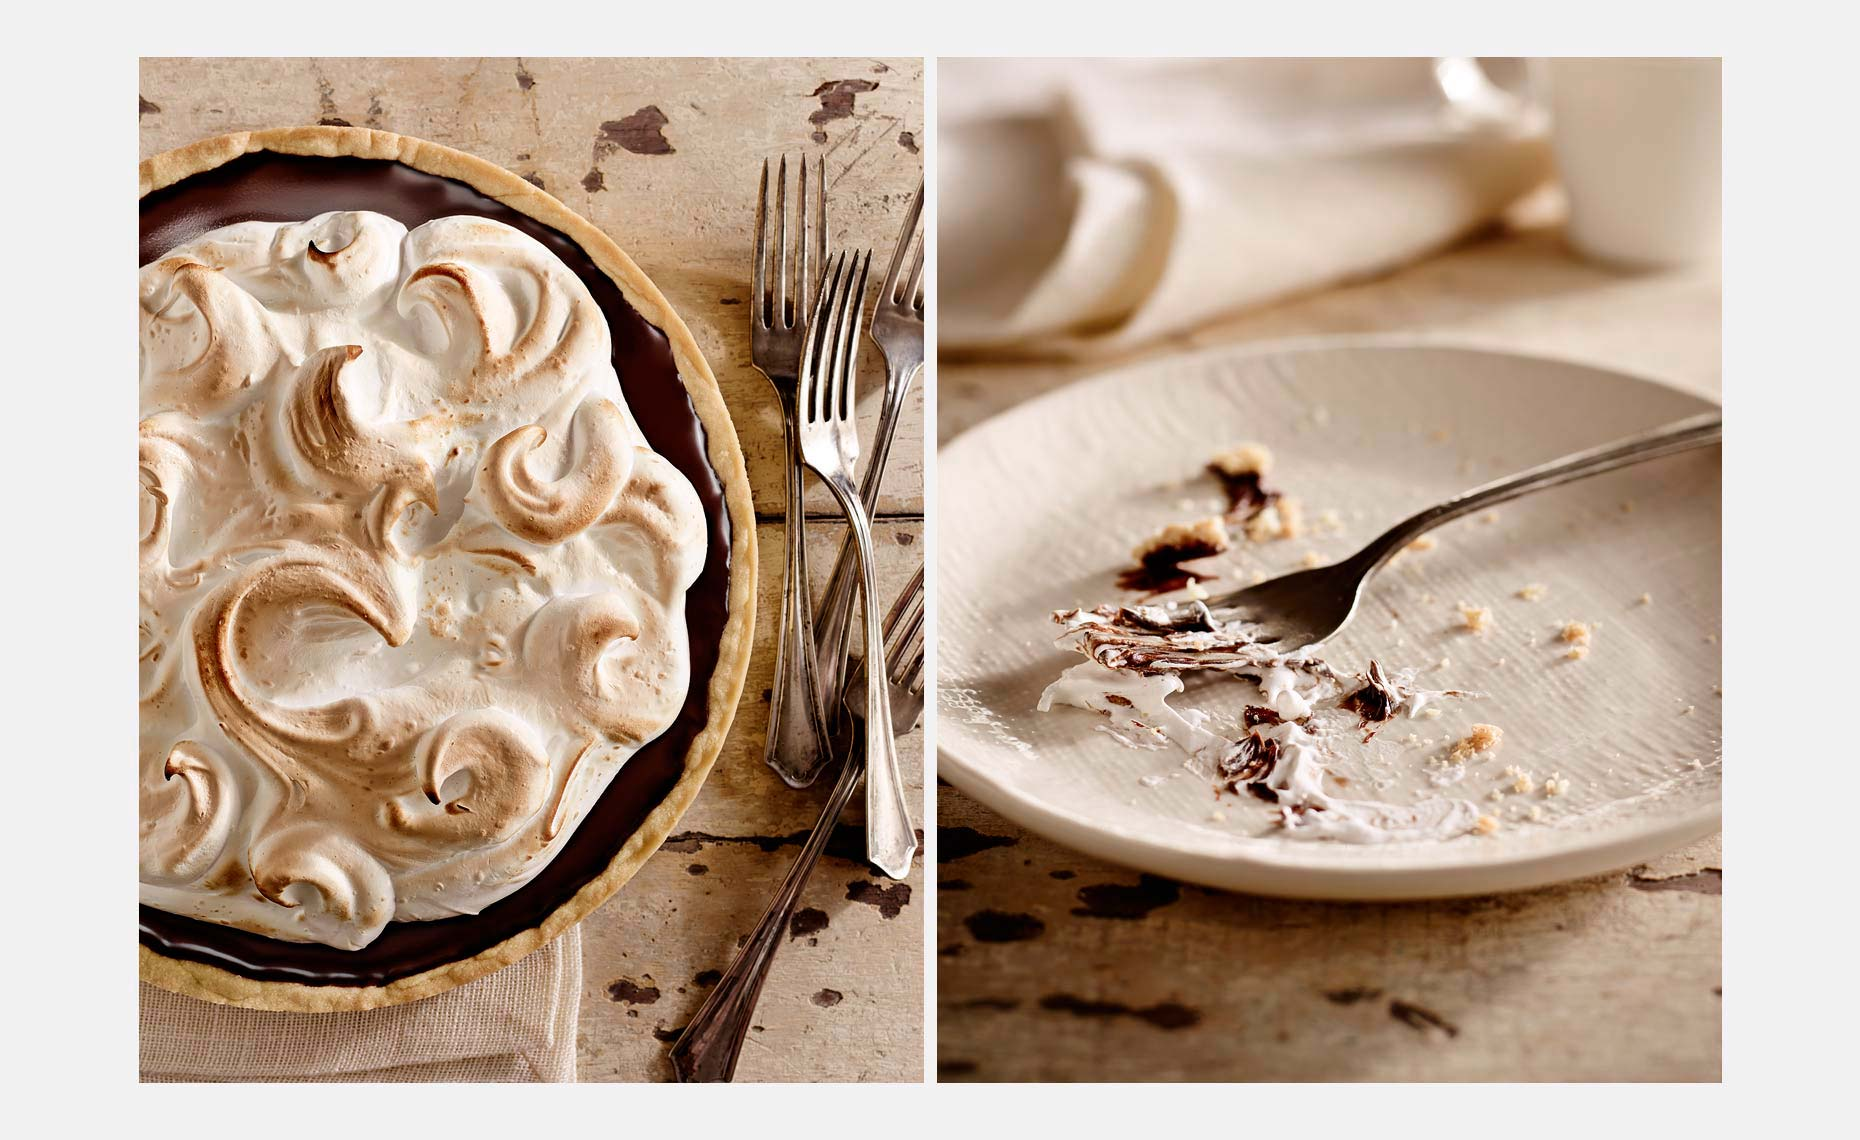 Choc_Meringue_Duo.jpg